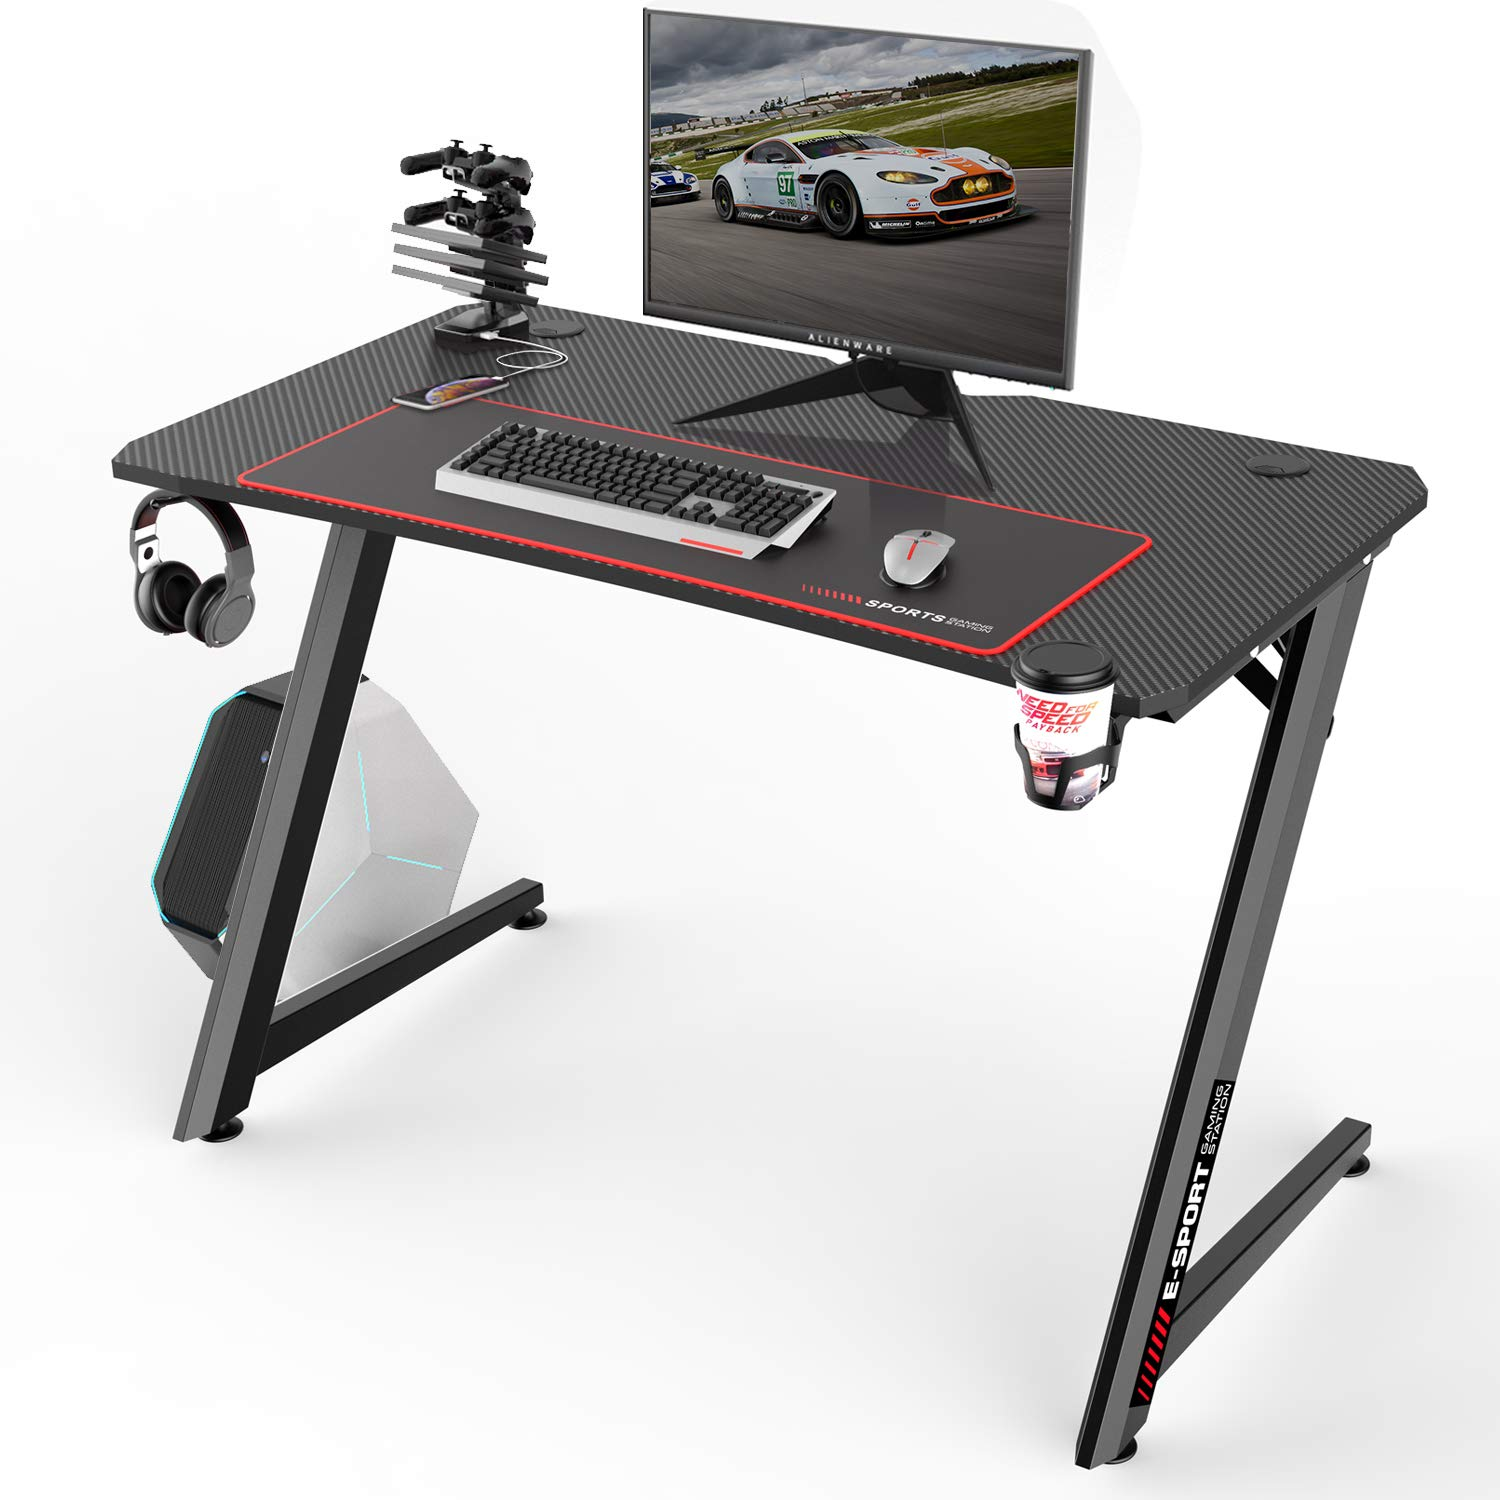 Vitesse 47 inch Gaming Desk Racing Style Computer Desk with Free Mouse pad, Z-Shaped Professional Gamer Game Station with USB Gaming Handle Rack, Cup Holder Headphone Hook Black